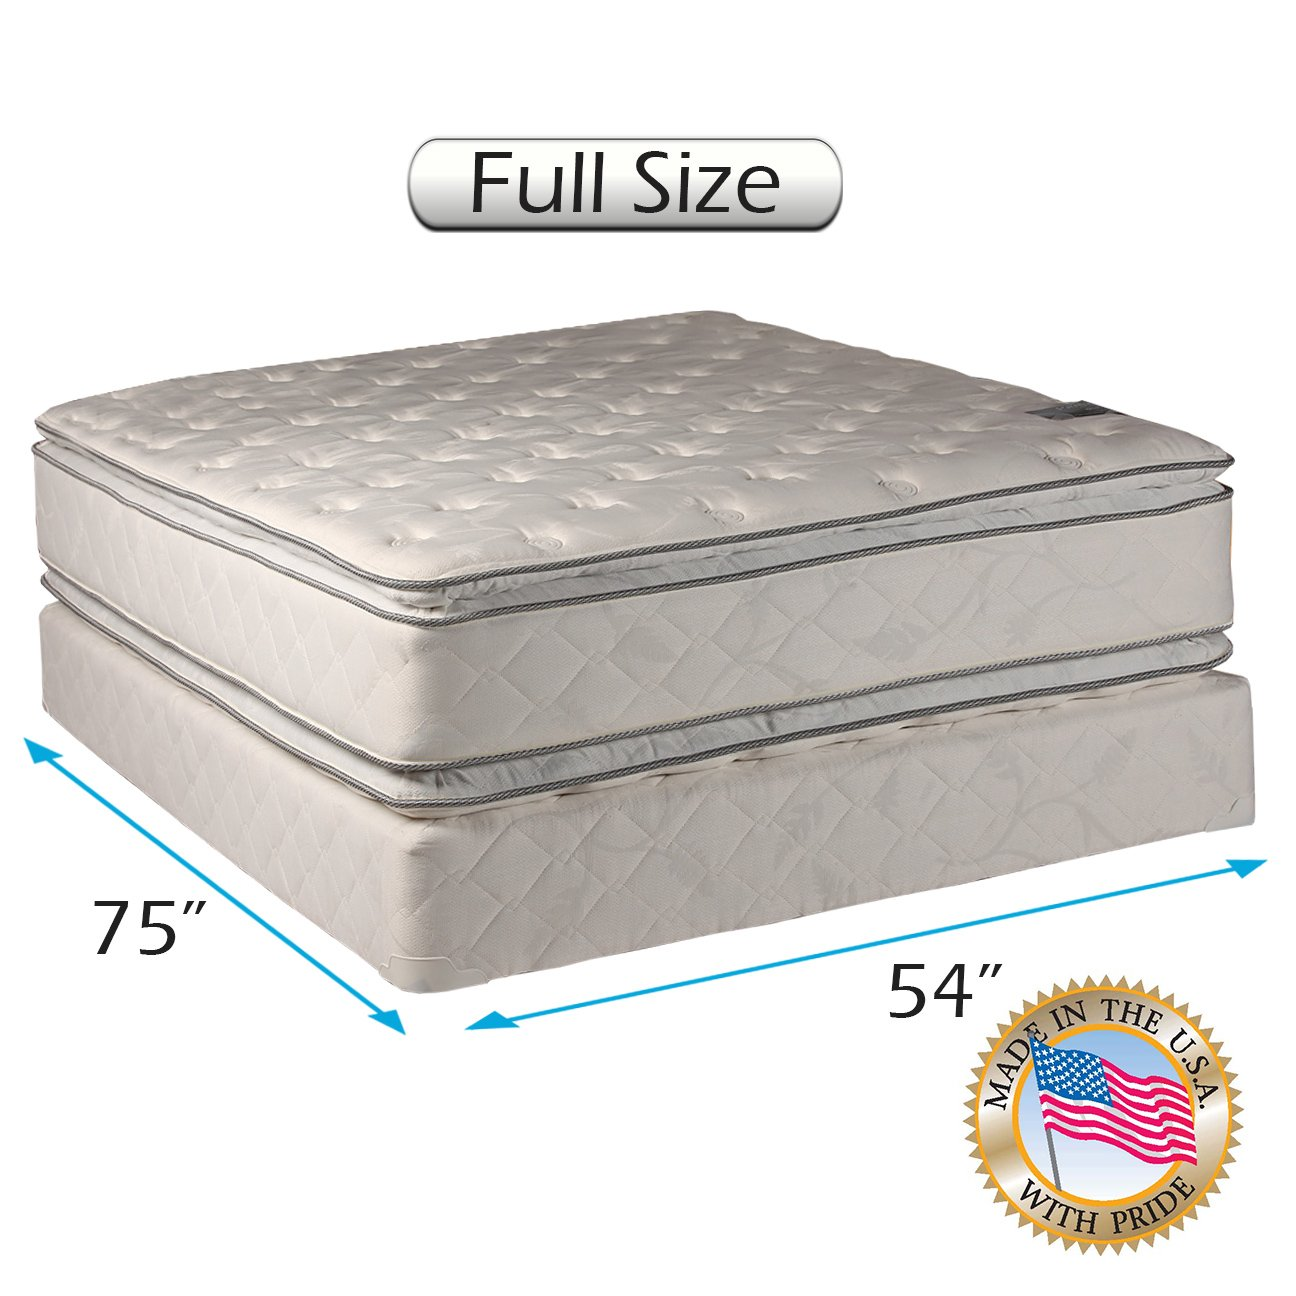 Dream Solutions Full Medium Soft PillowTop 2-Sided Mattress Set with Mattress Cover Protector Included - Sleep System with Enhanced Cushion Support, Fully Assembled, Back Support, Longlasting